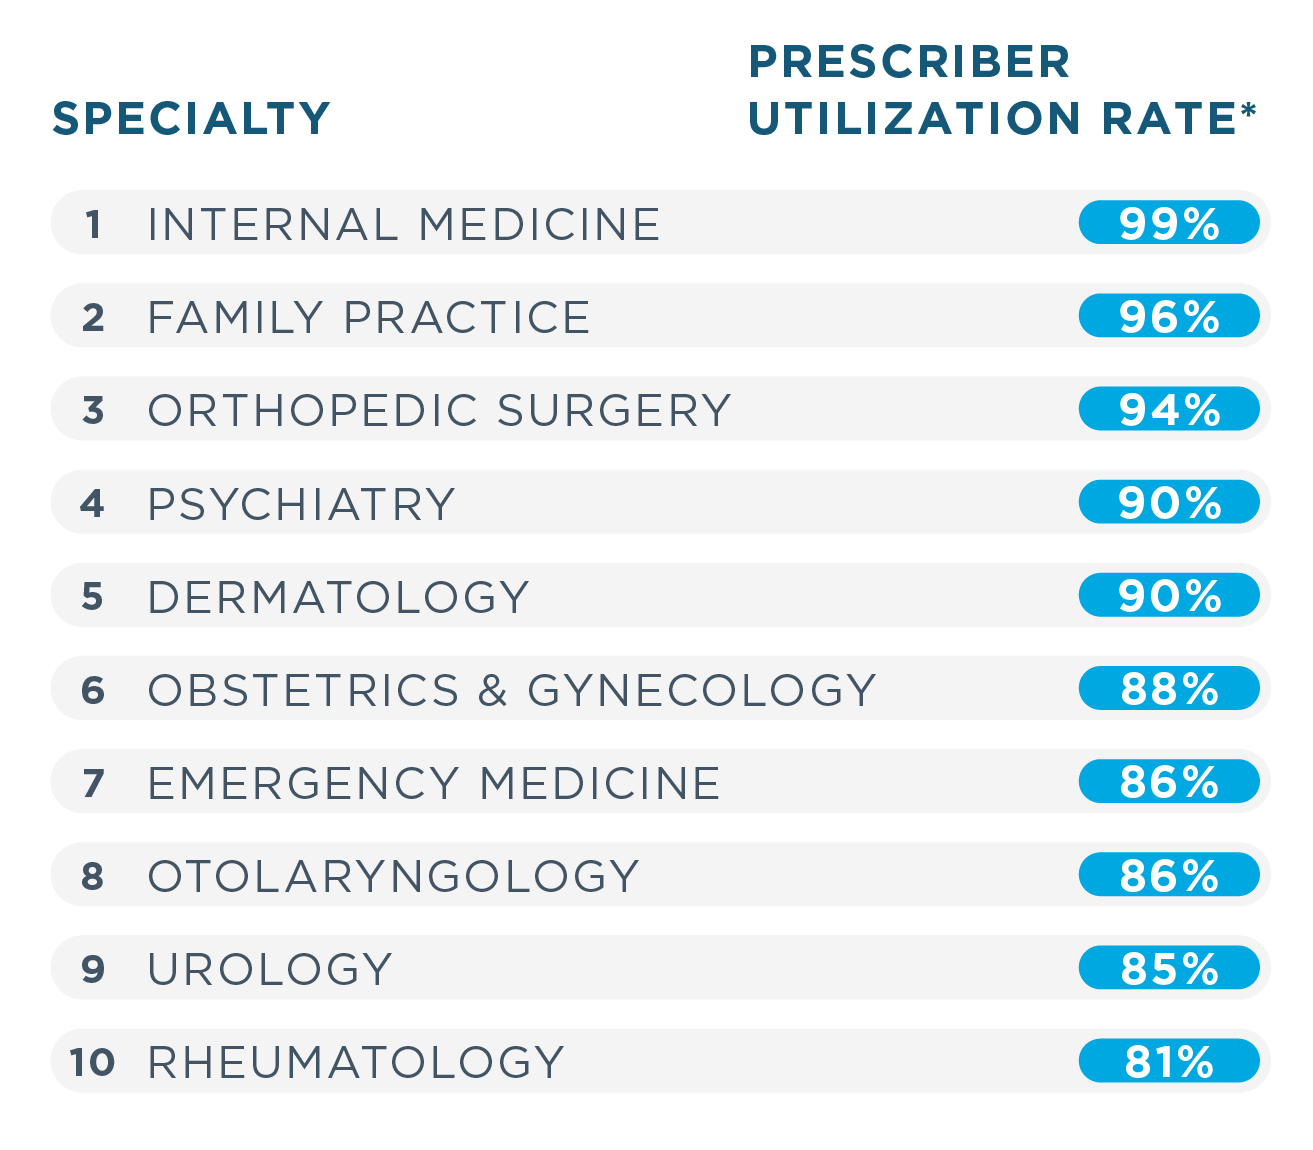 The top 10 medical specialties using E-Prescribing in 2020 were internal medicine with a 99% utilization rate, family practice with 96%, orthopedic surgery with 94%, psychiatry and dermatology with 90% each, obstetrics and gynecology with 88%, emergency medicine and otolaryngology with 86% each, urology with 85% and rheumatology with 81%.